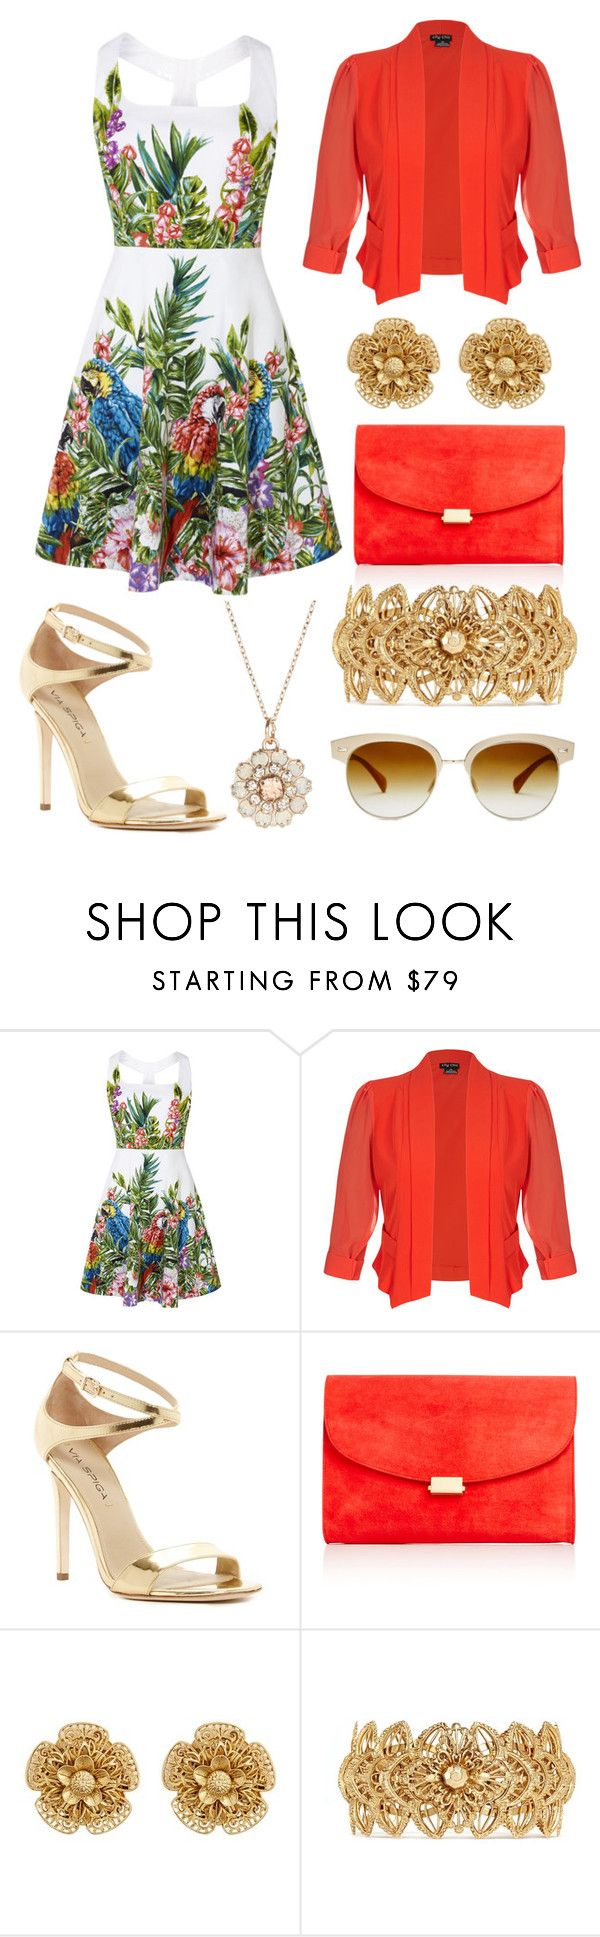 """Floral Golden"" by alphashe on Polyvore featuring City Chic, Via Spiga, Mansur Gavriel, Miriam Haskell, Accessorize and Oliver Peoples"